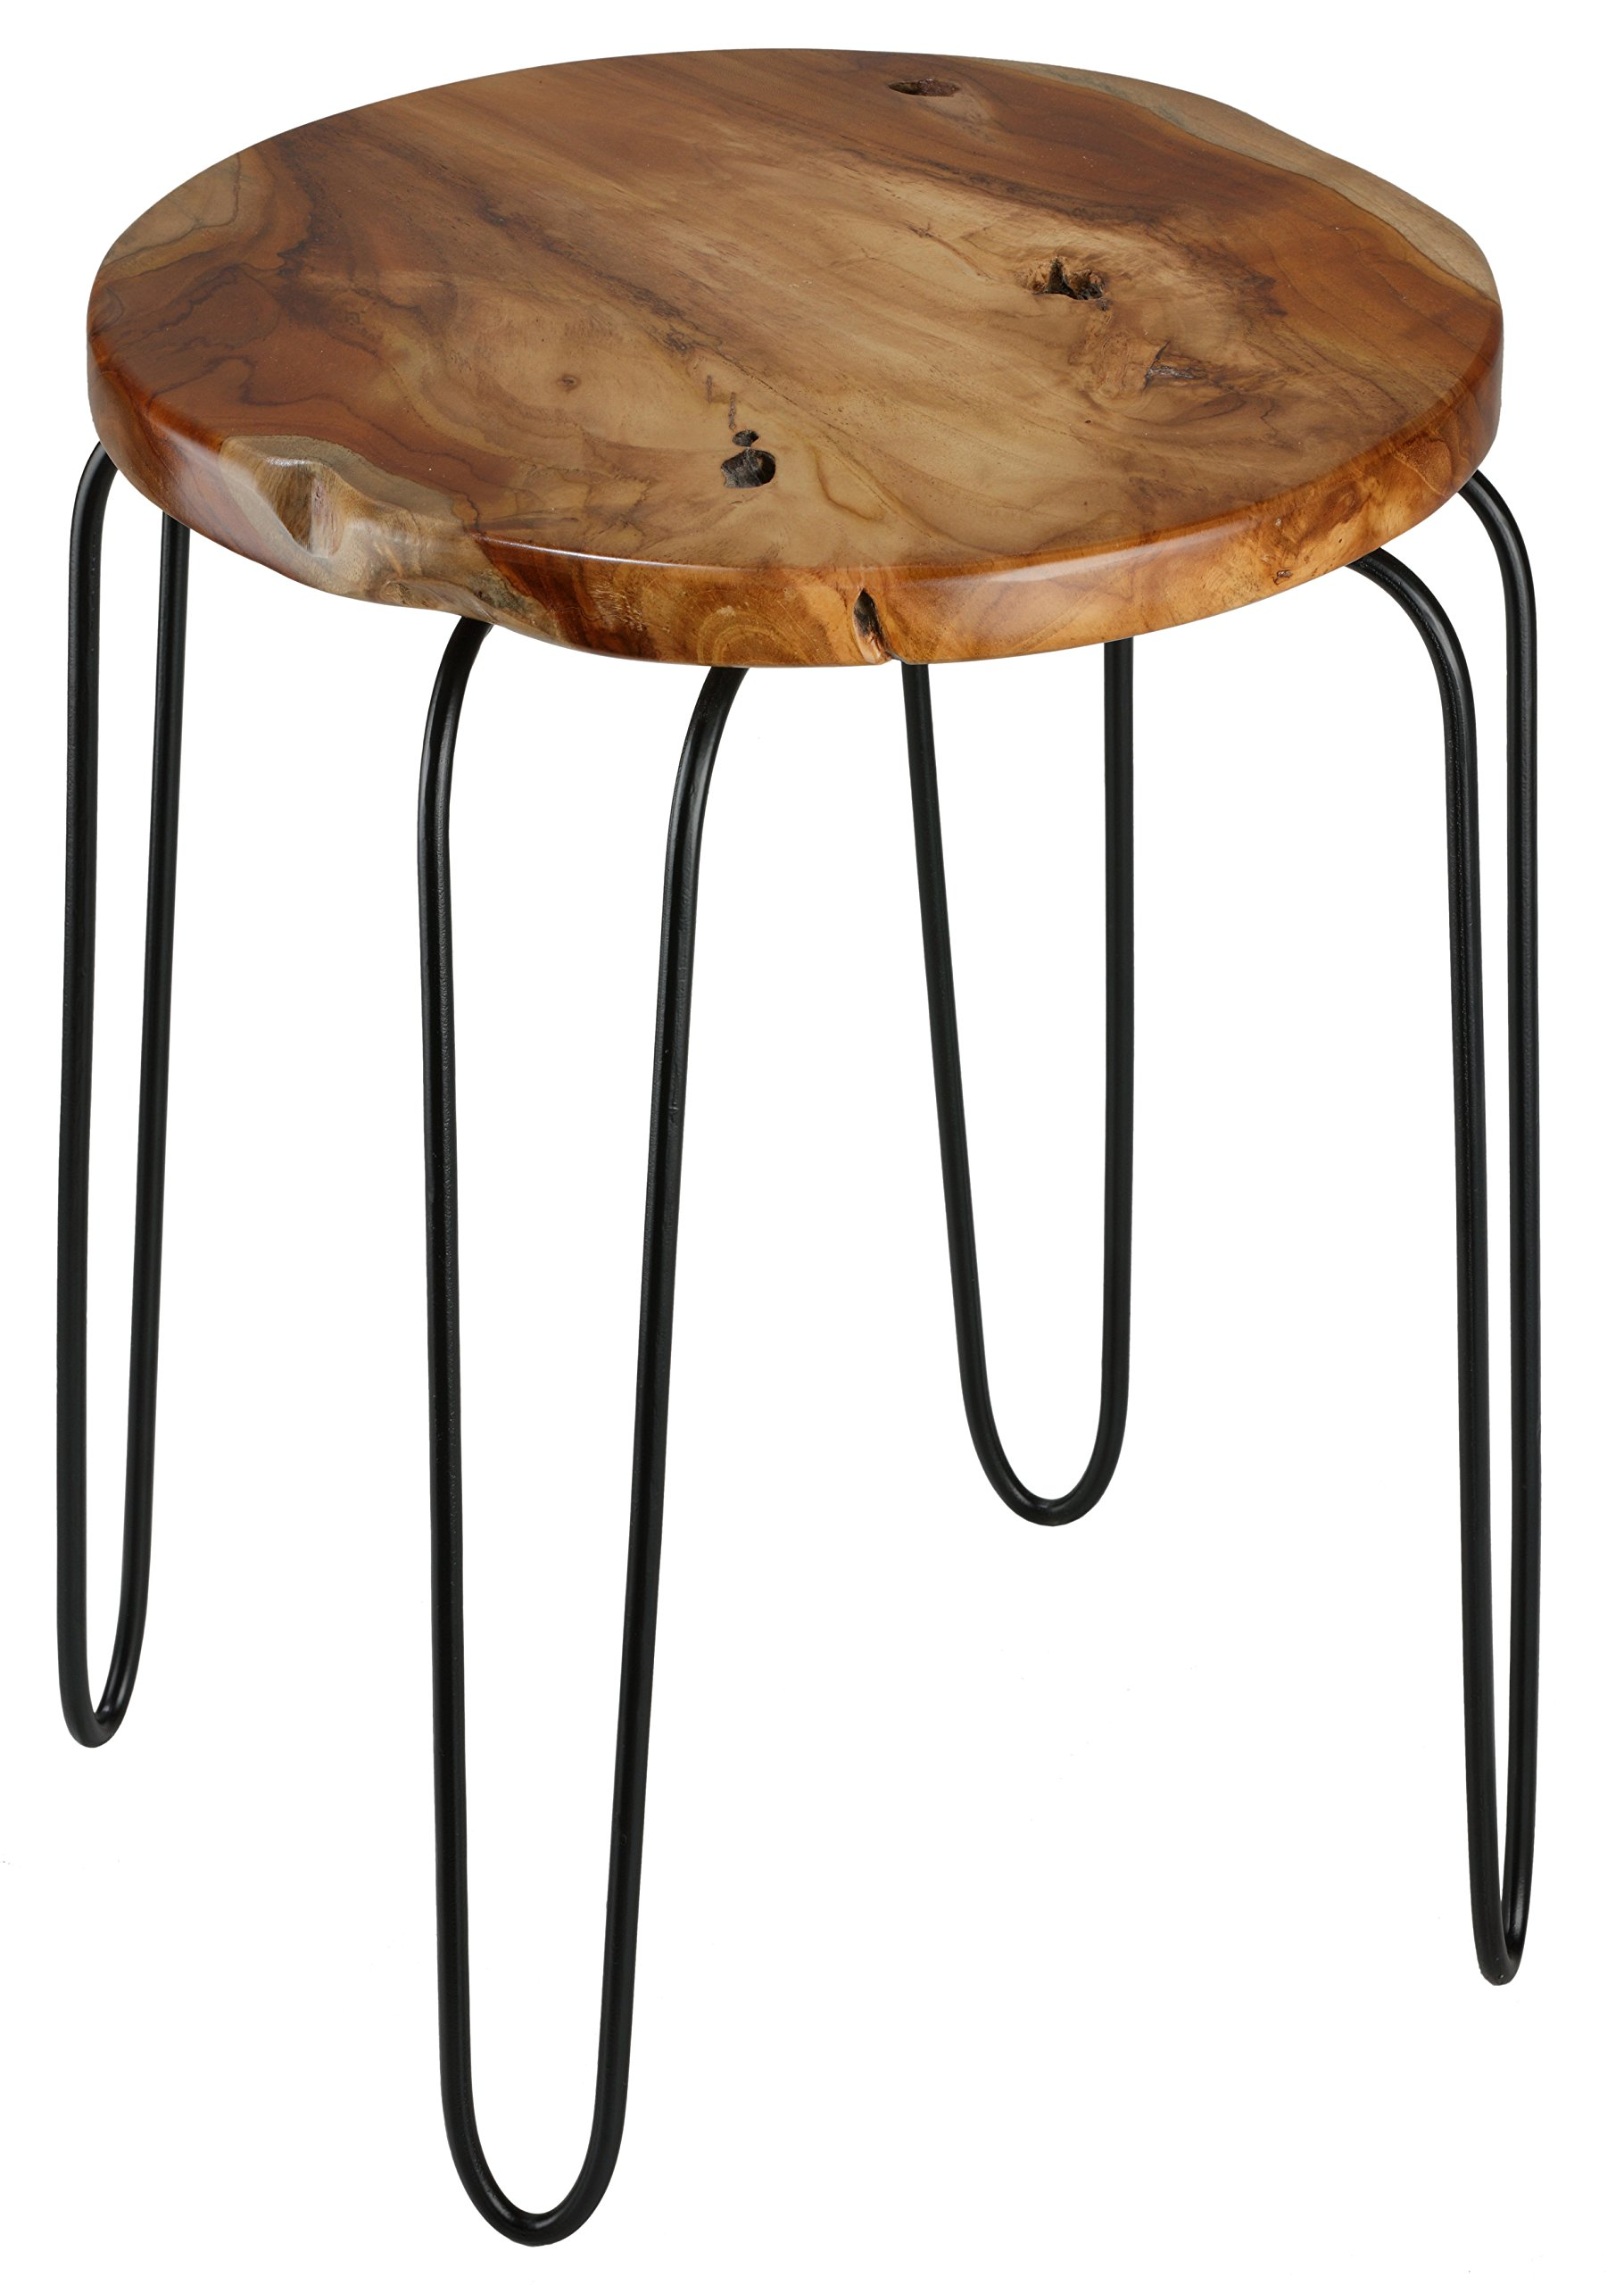 Lacie End Table with Teak Root Top